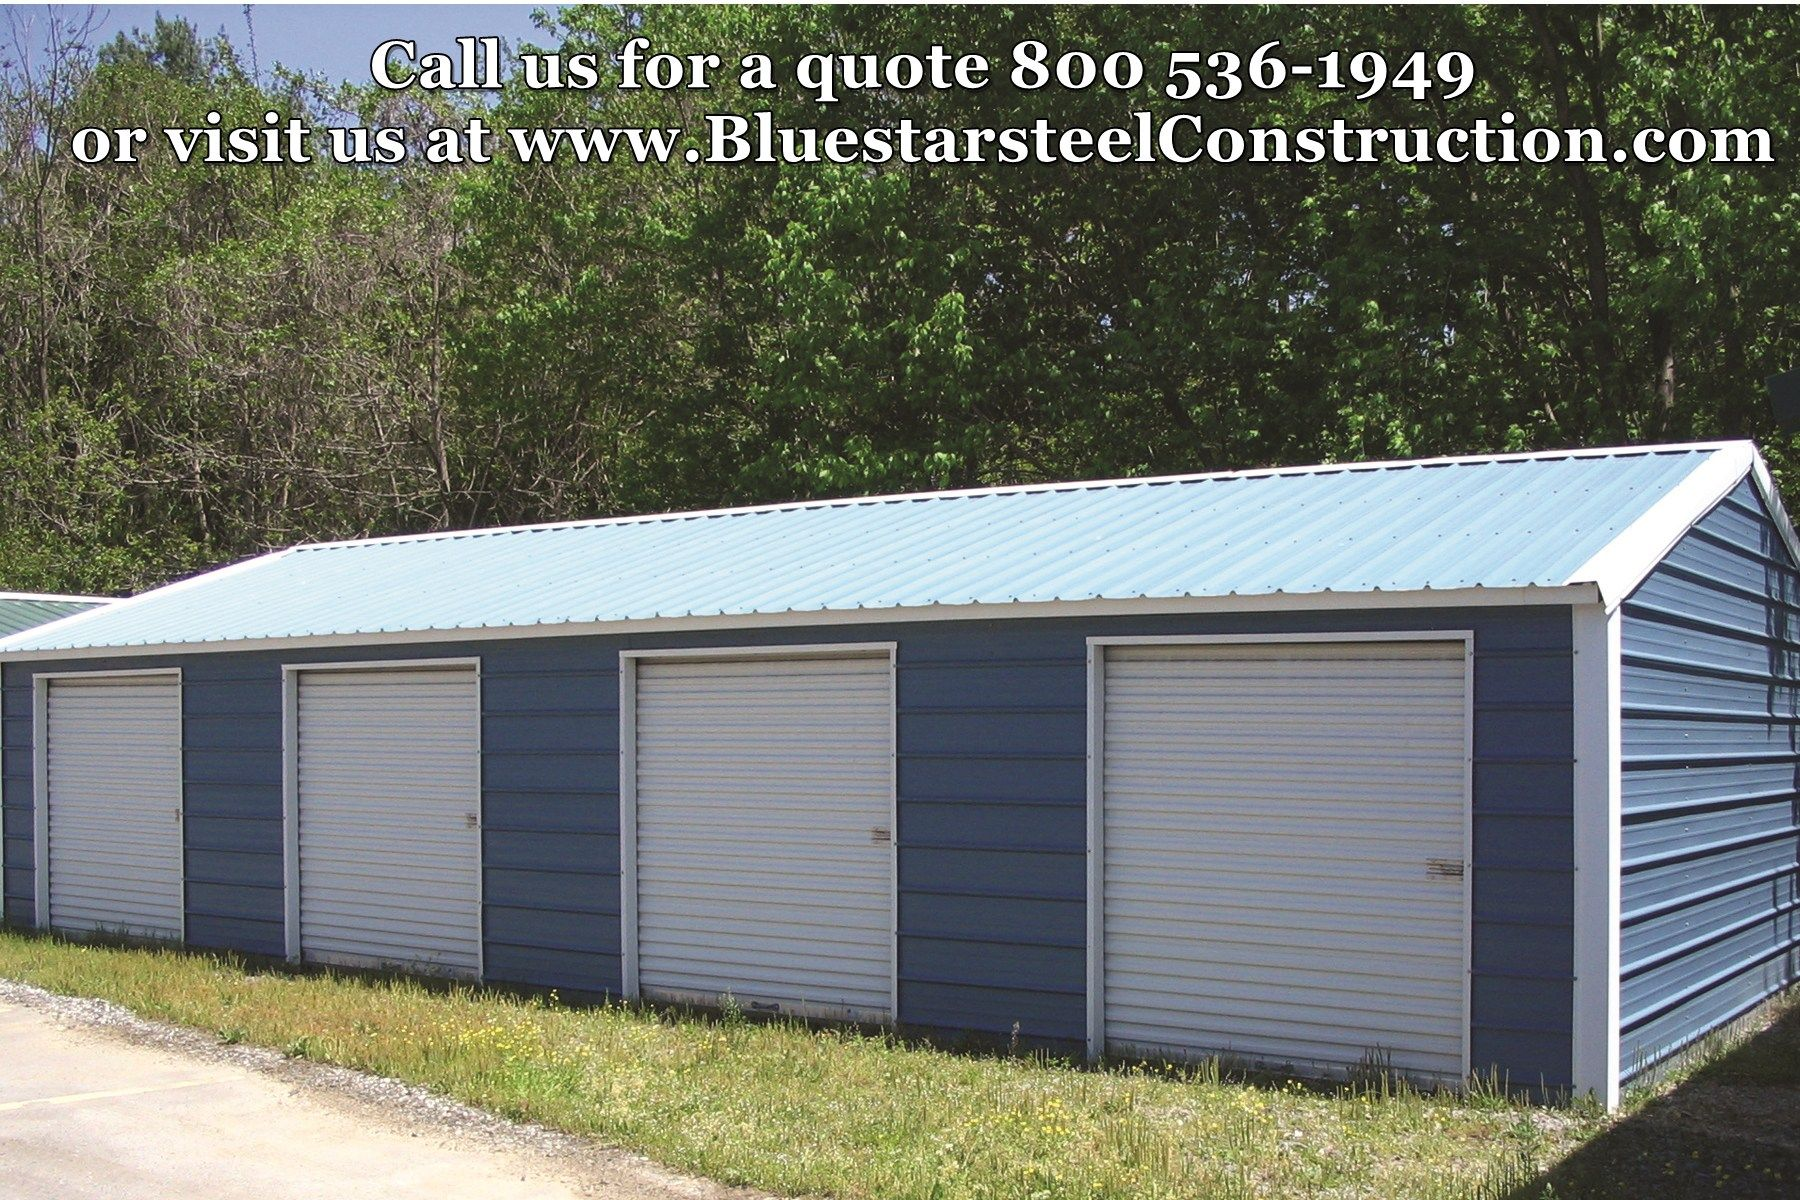 Metal Building 4 Car Garage Low Cost Steel Call 1 800 536 1949 For A Quote